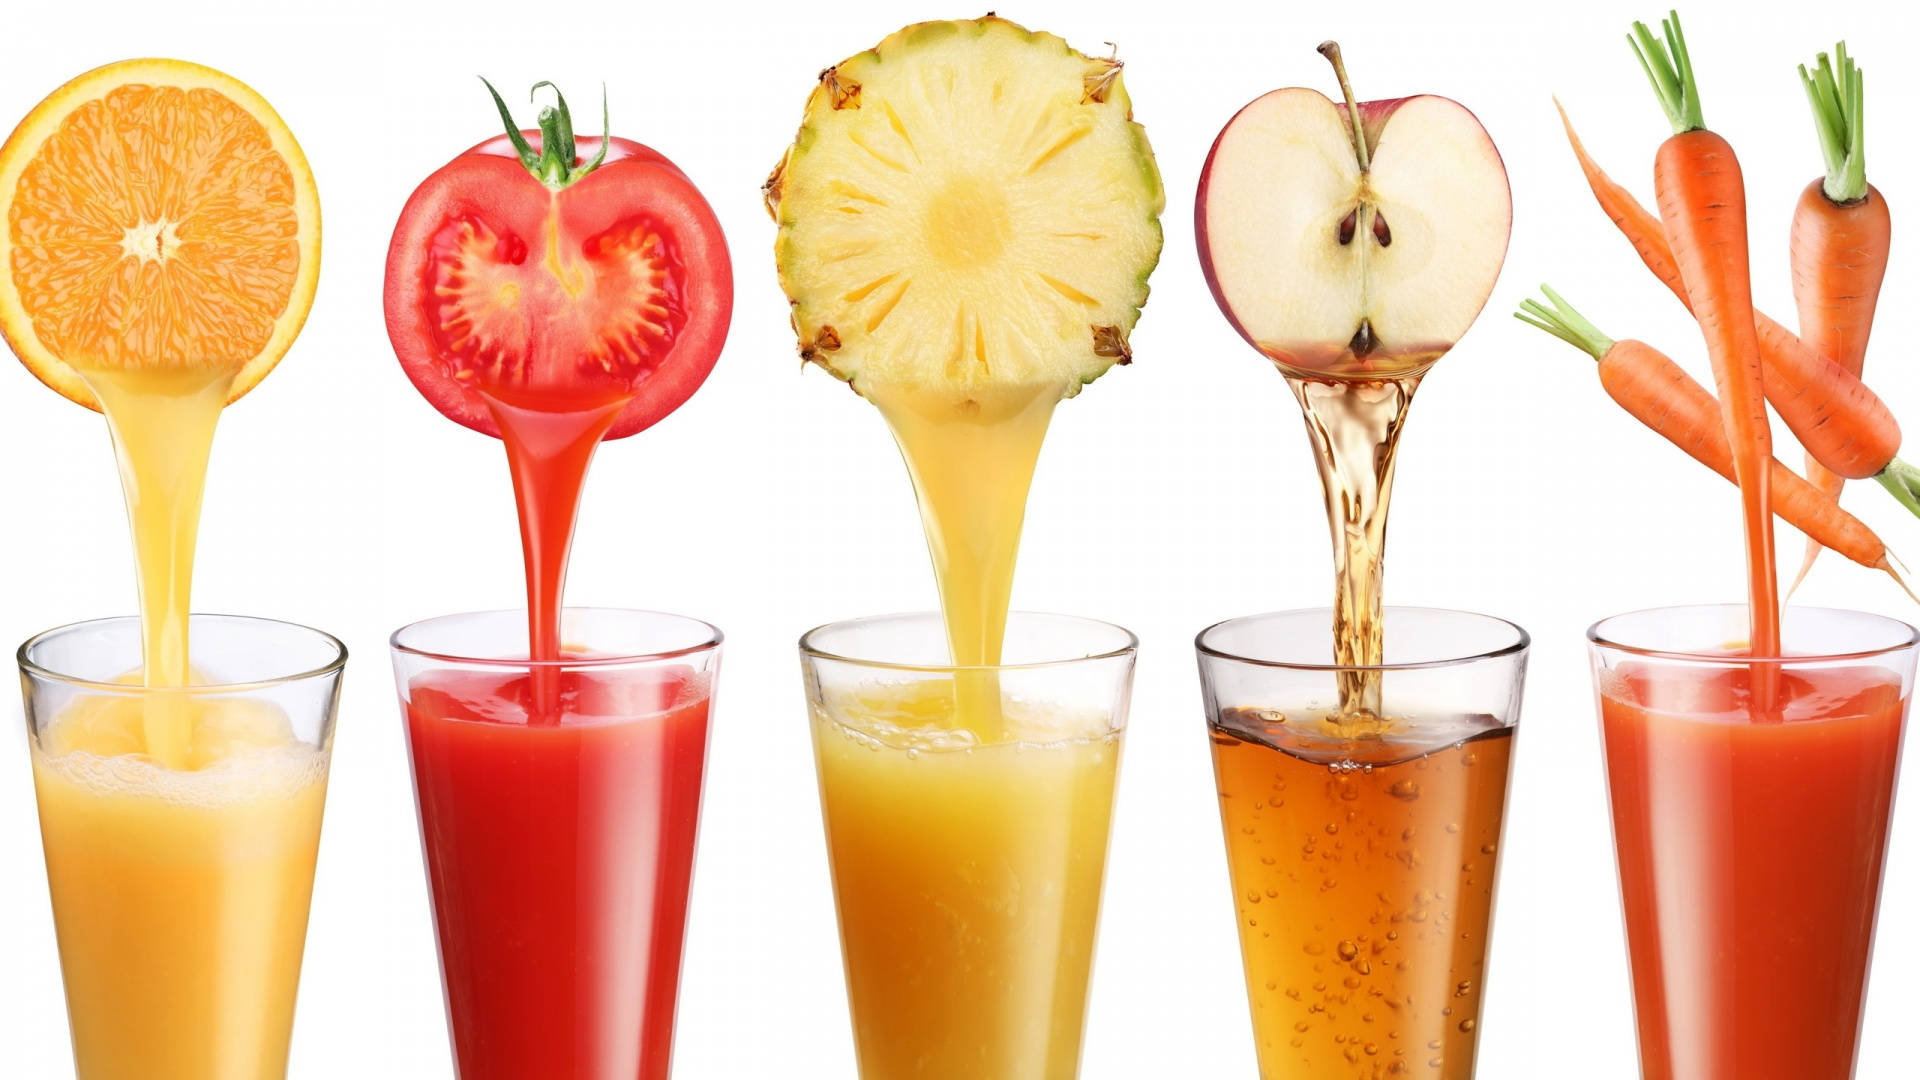 5 Amazing facts: Juicing Raw Fruits For Weight Loss | The ...